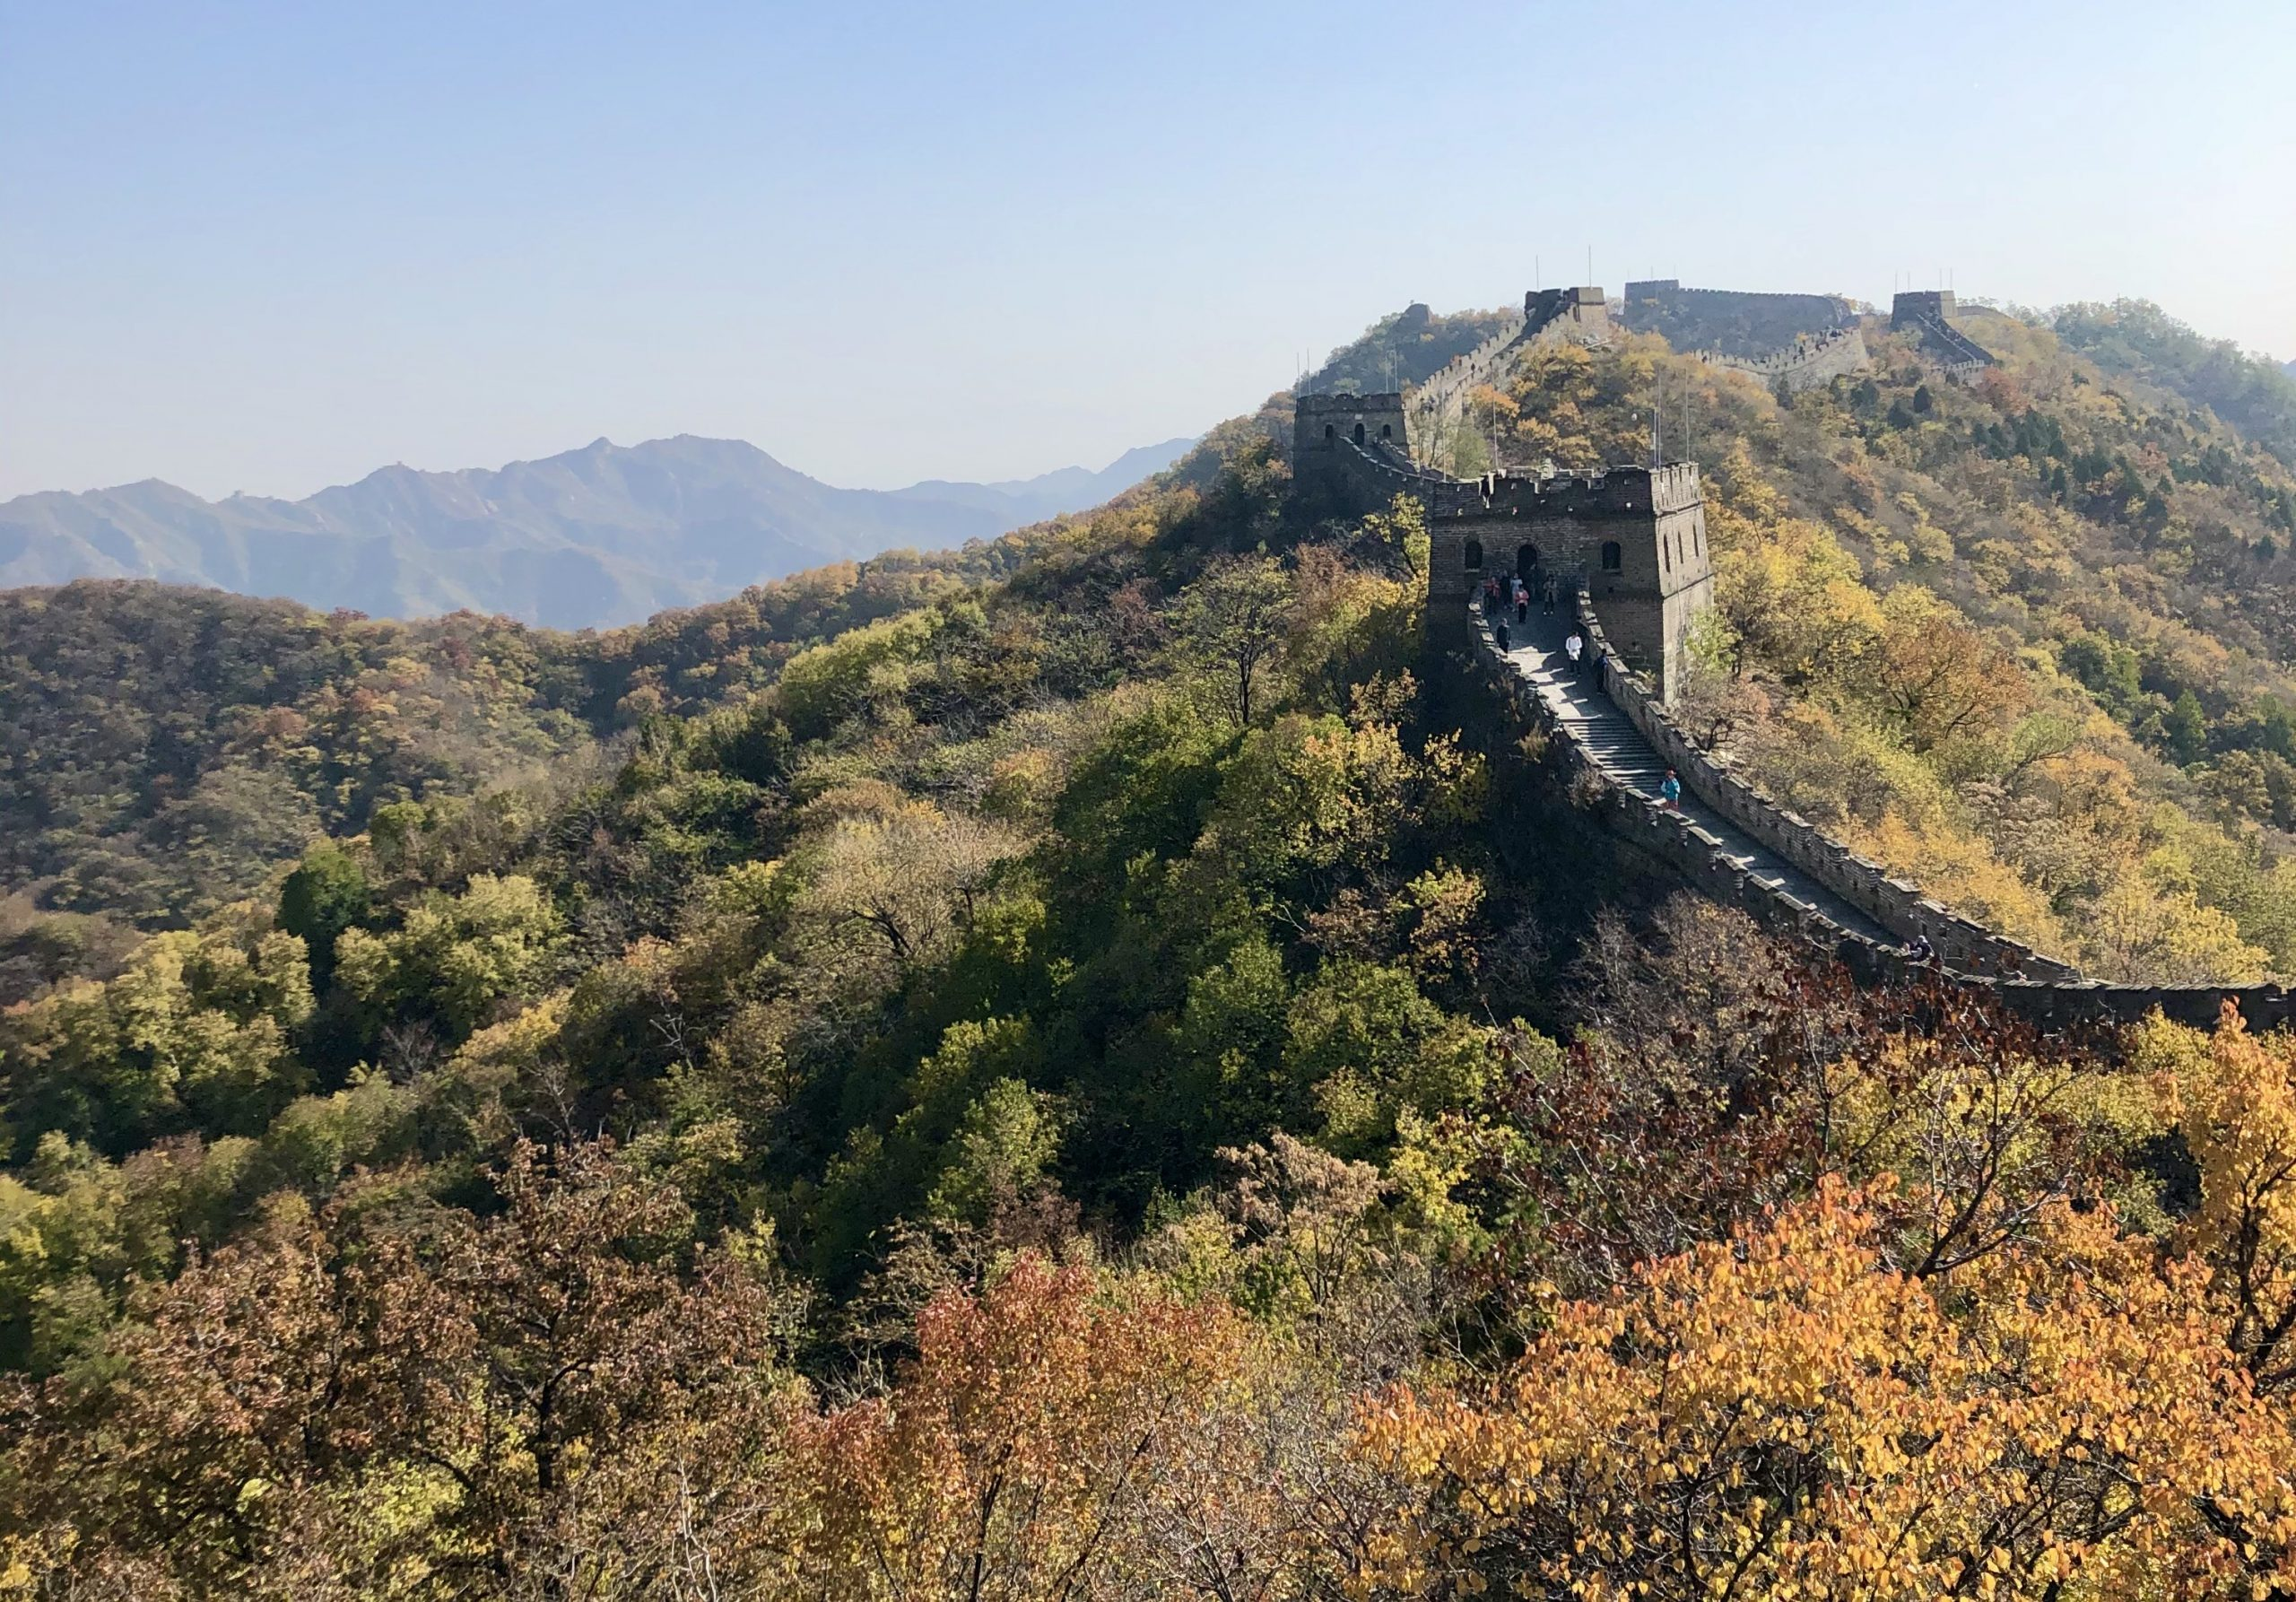 The Great Wall of China: Walking Along One of the World's Seven Wonders via @outandacross